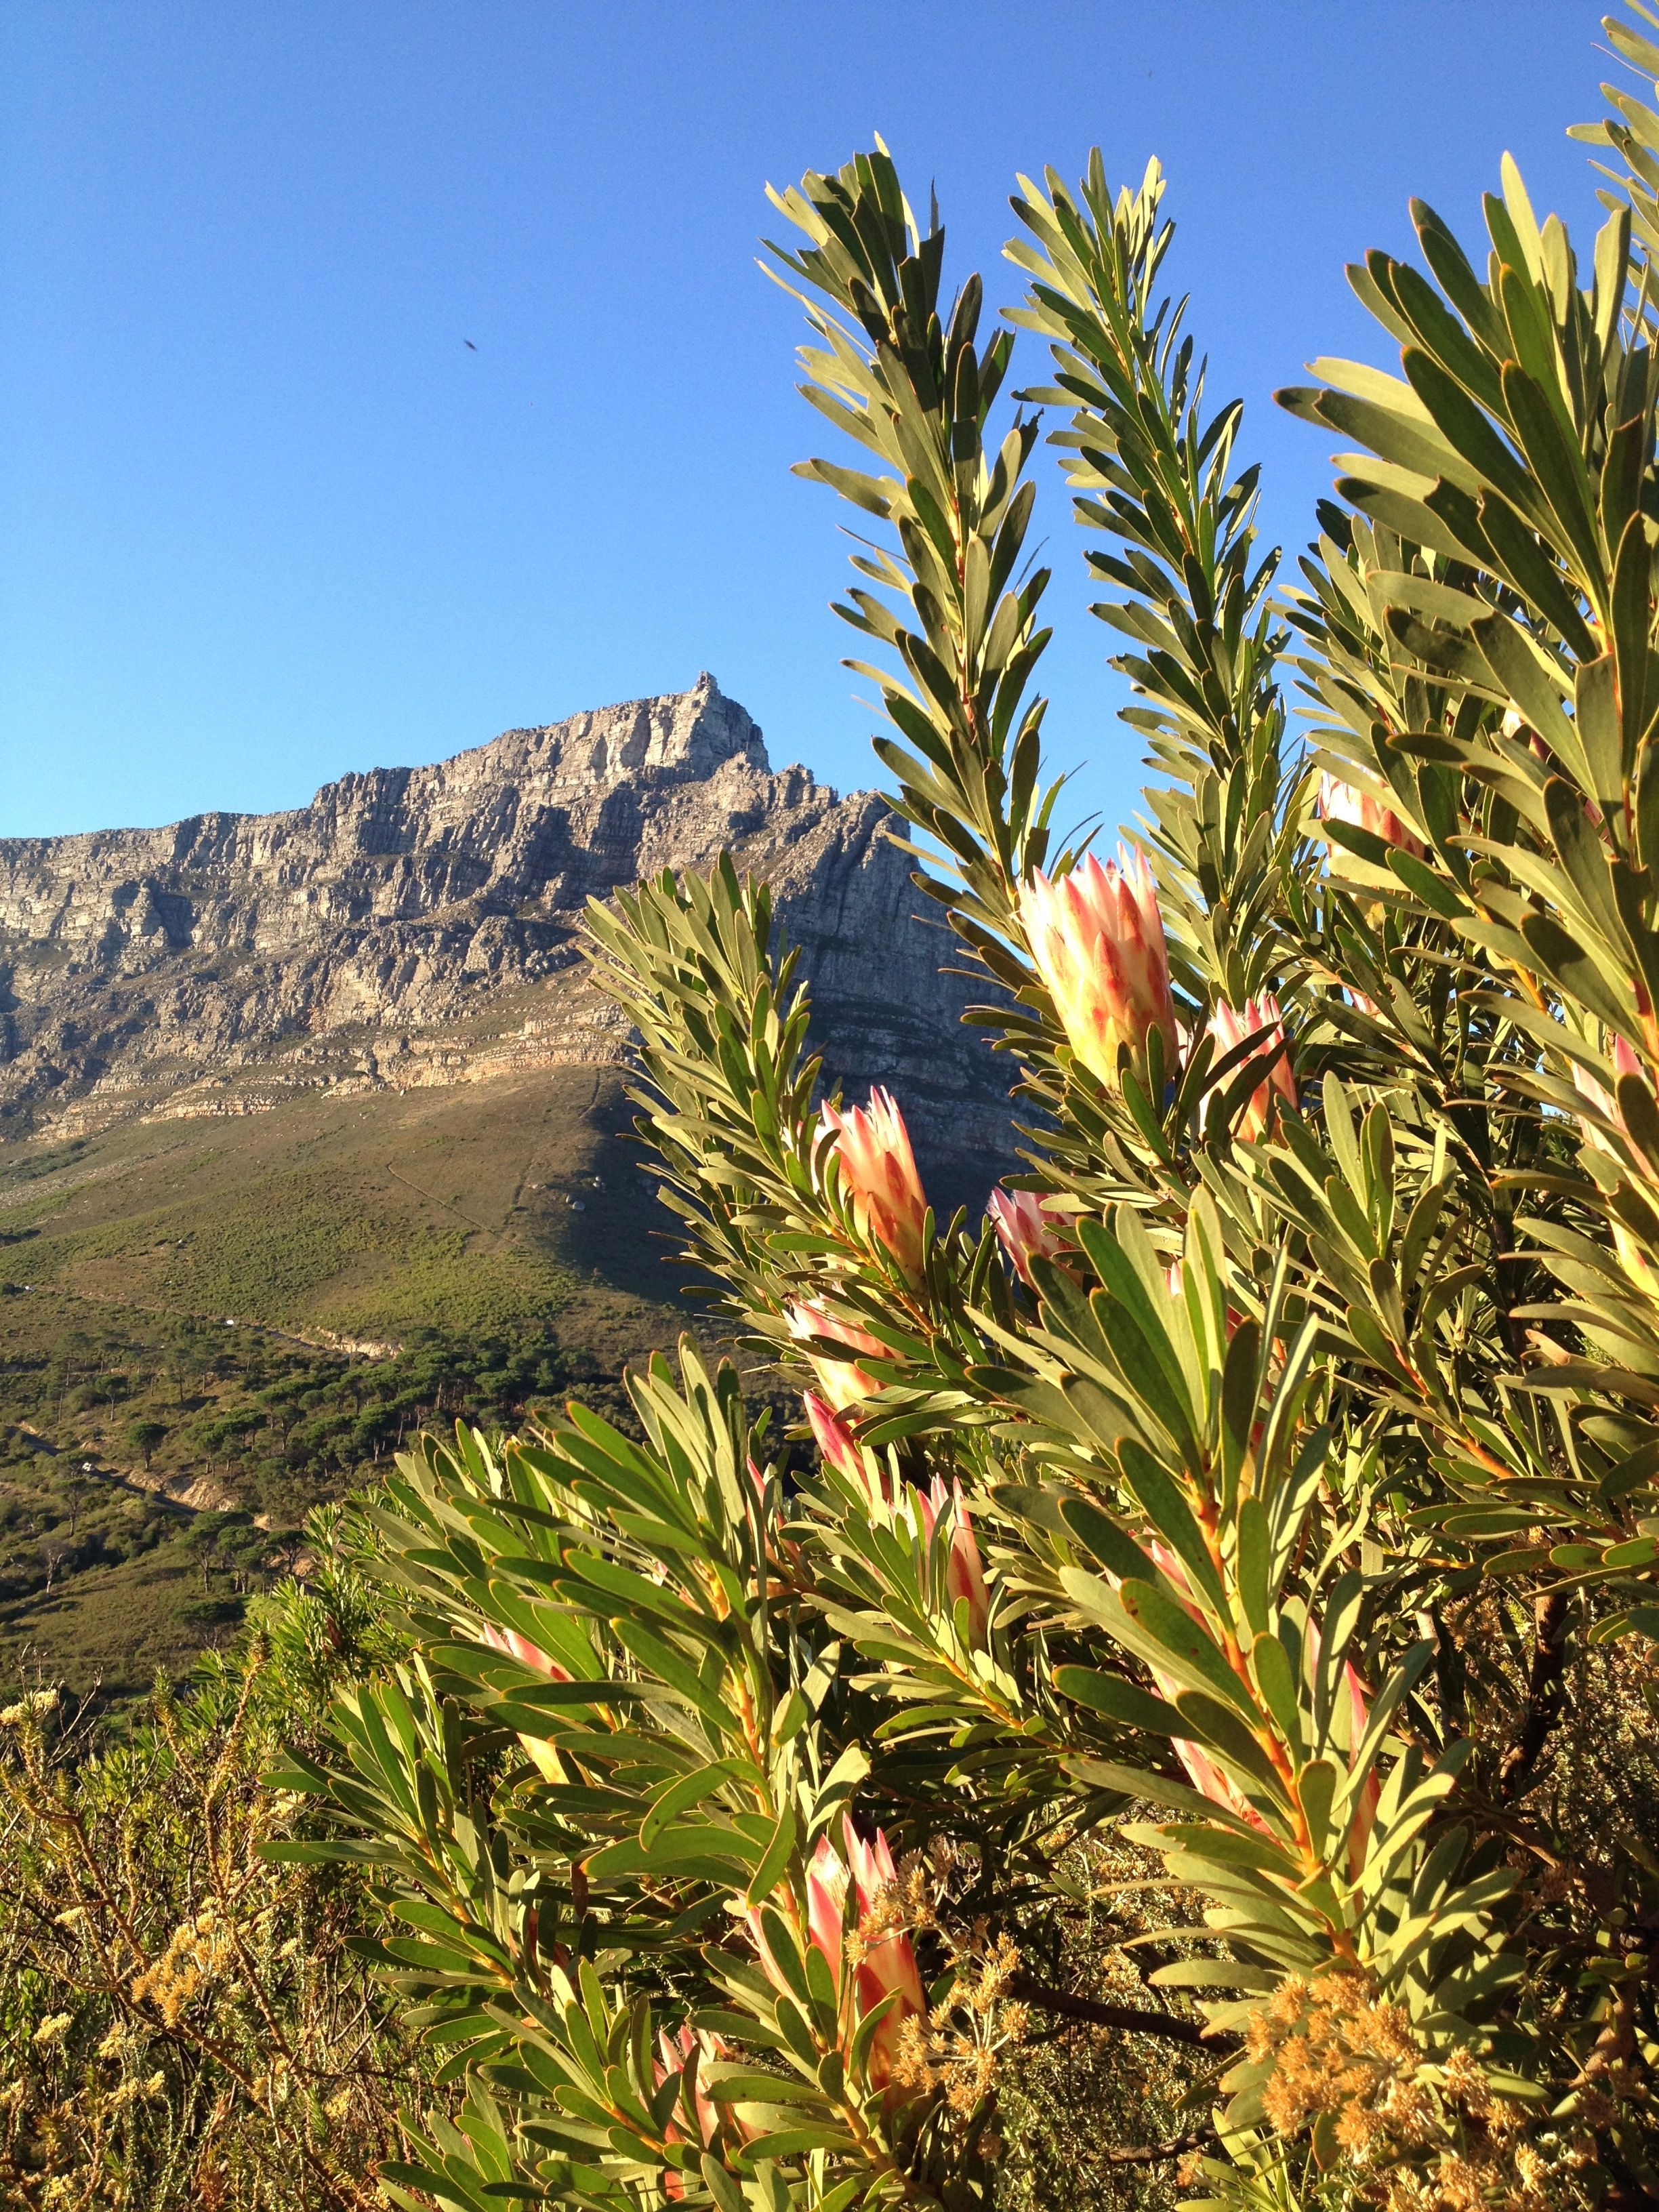 Mountains and proteas, from Lion's Head